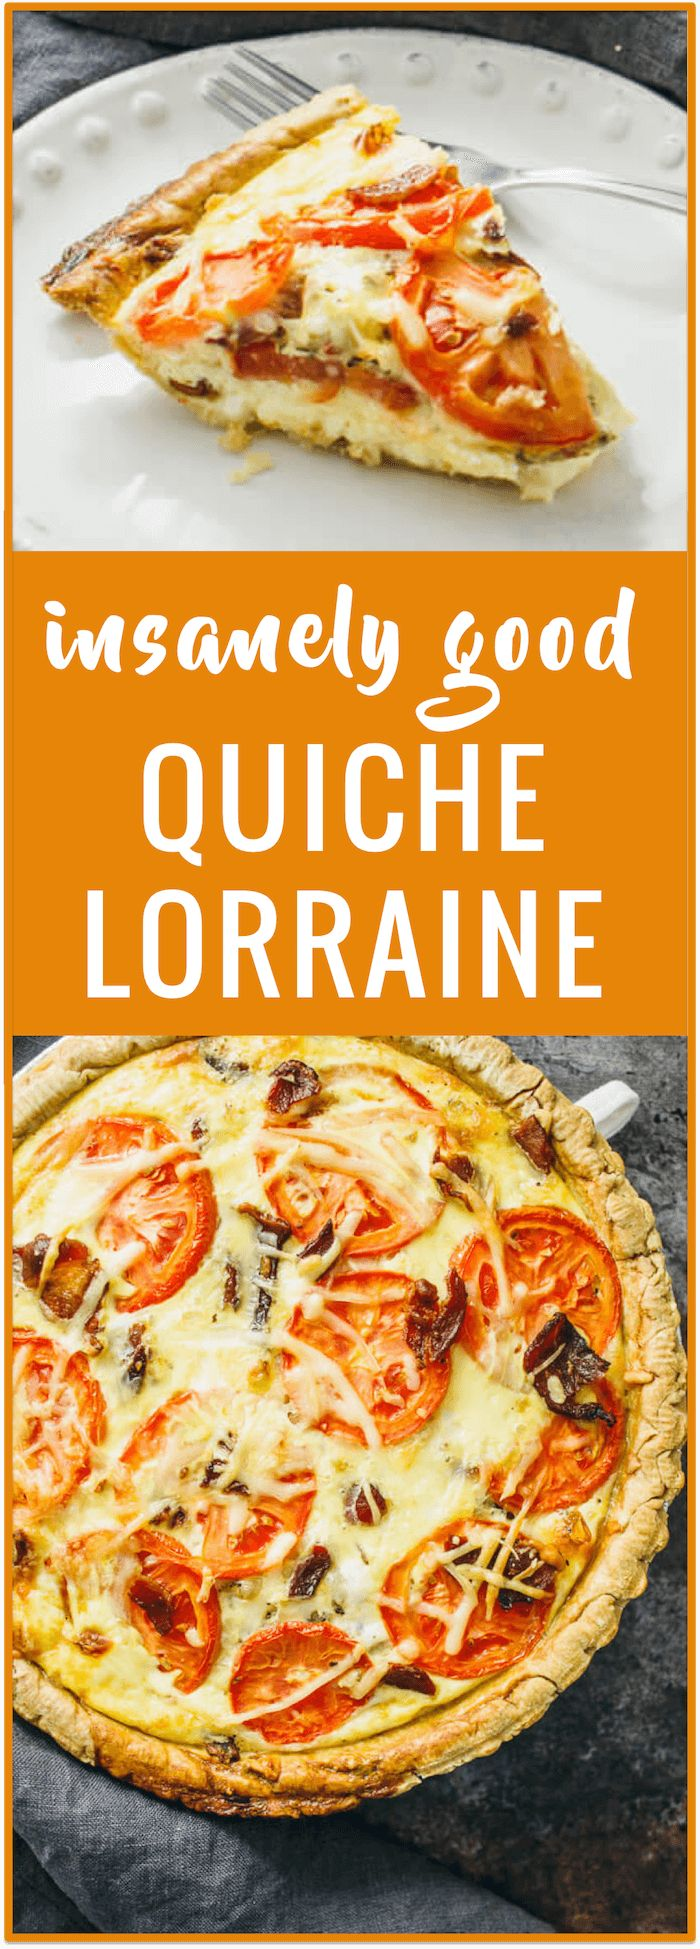 Quiche lorraine - Slice into this comforting quiche lorraine, filled with crispy crumbled bacon, sliced tomatoes, eggs, and pepper jack cheese. It's an easy oven recipe for a classic and healthy quiche lorraine. - savorytooth.com